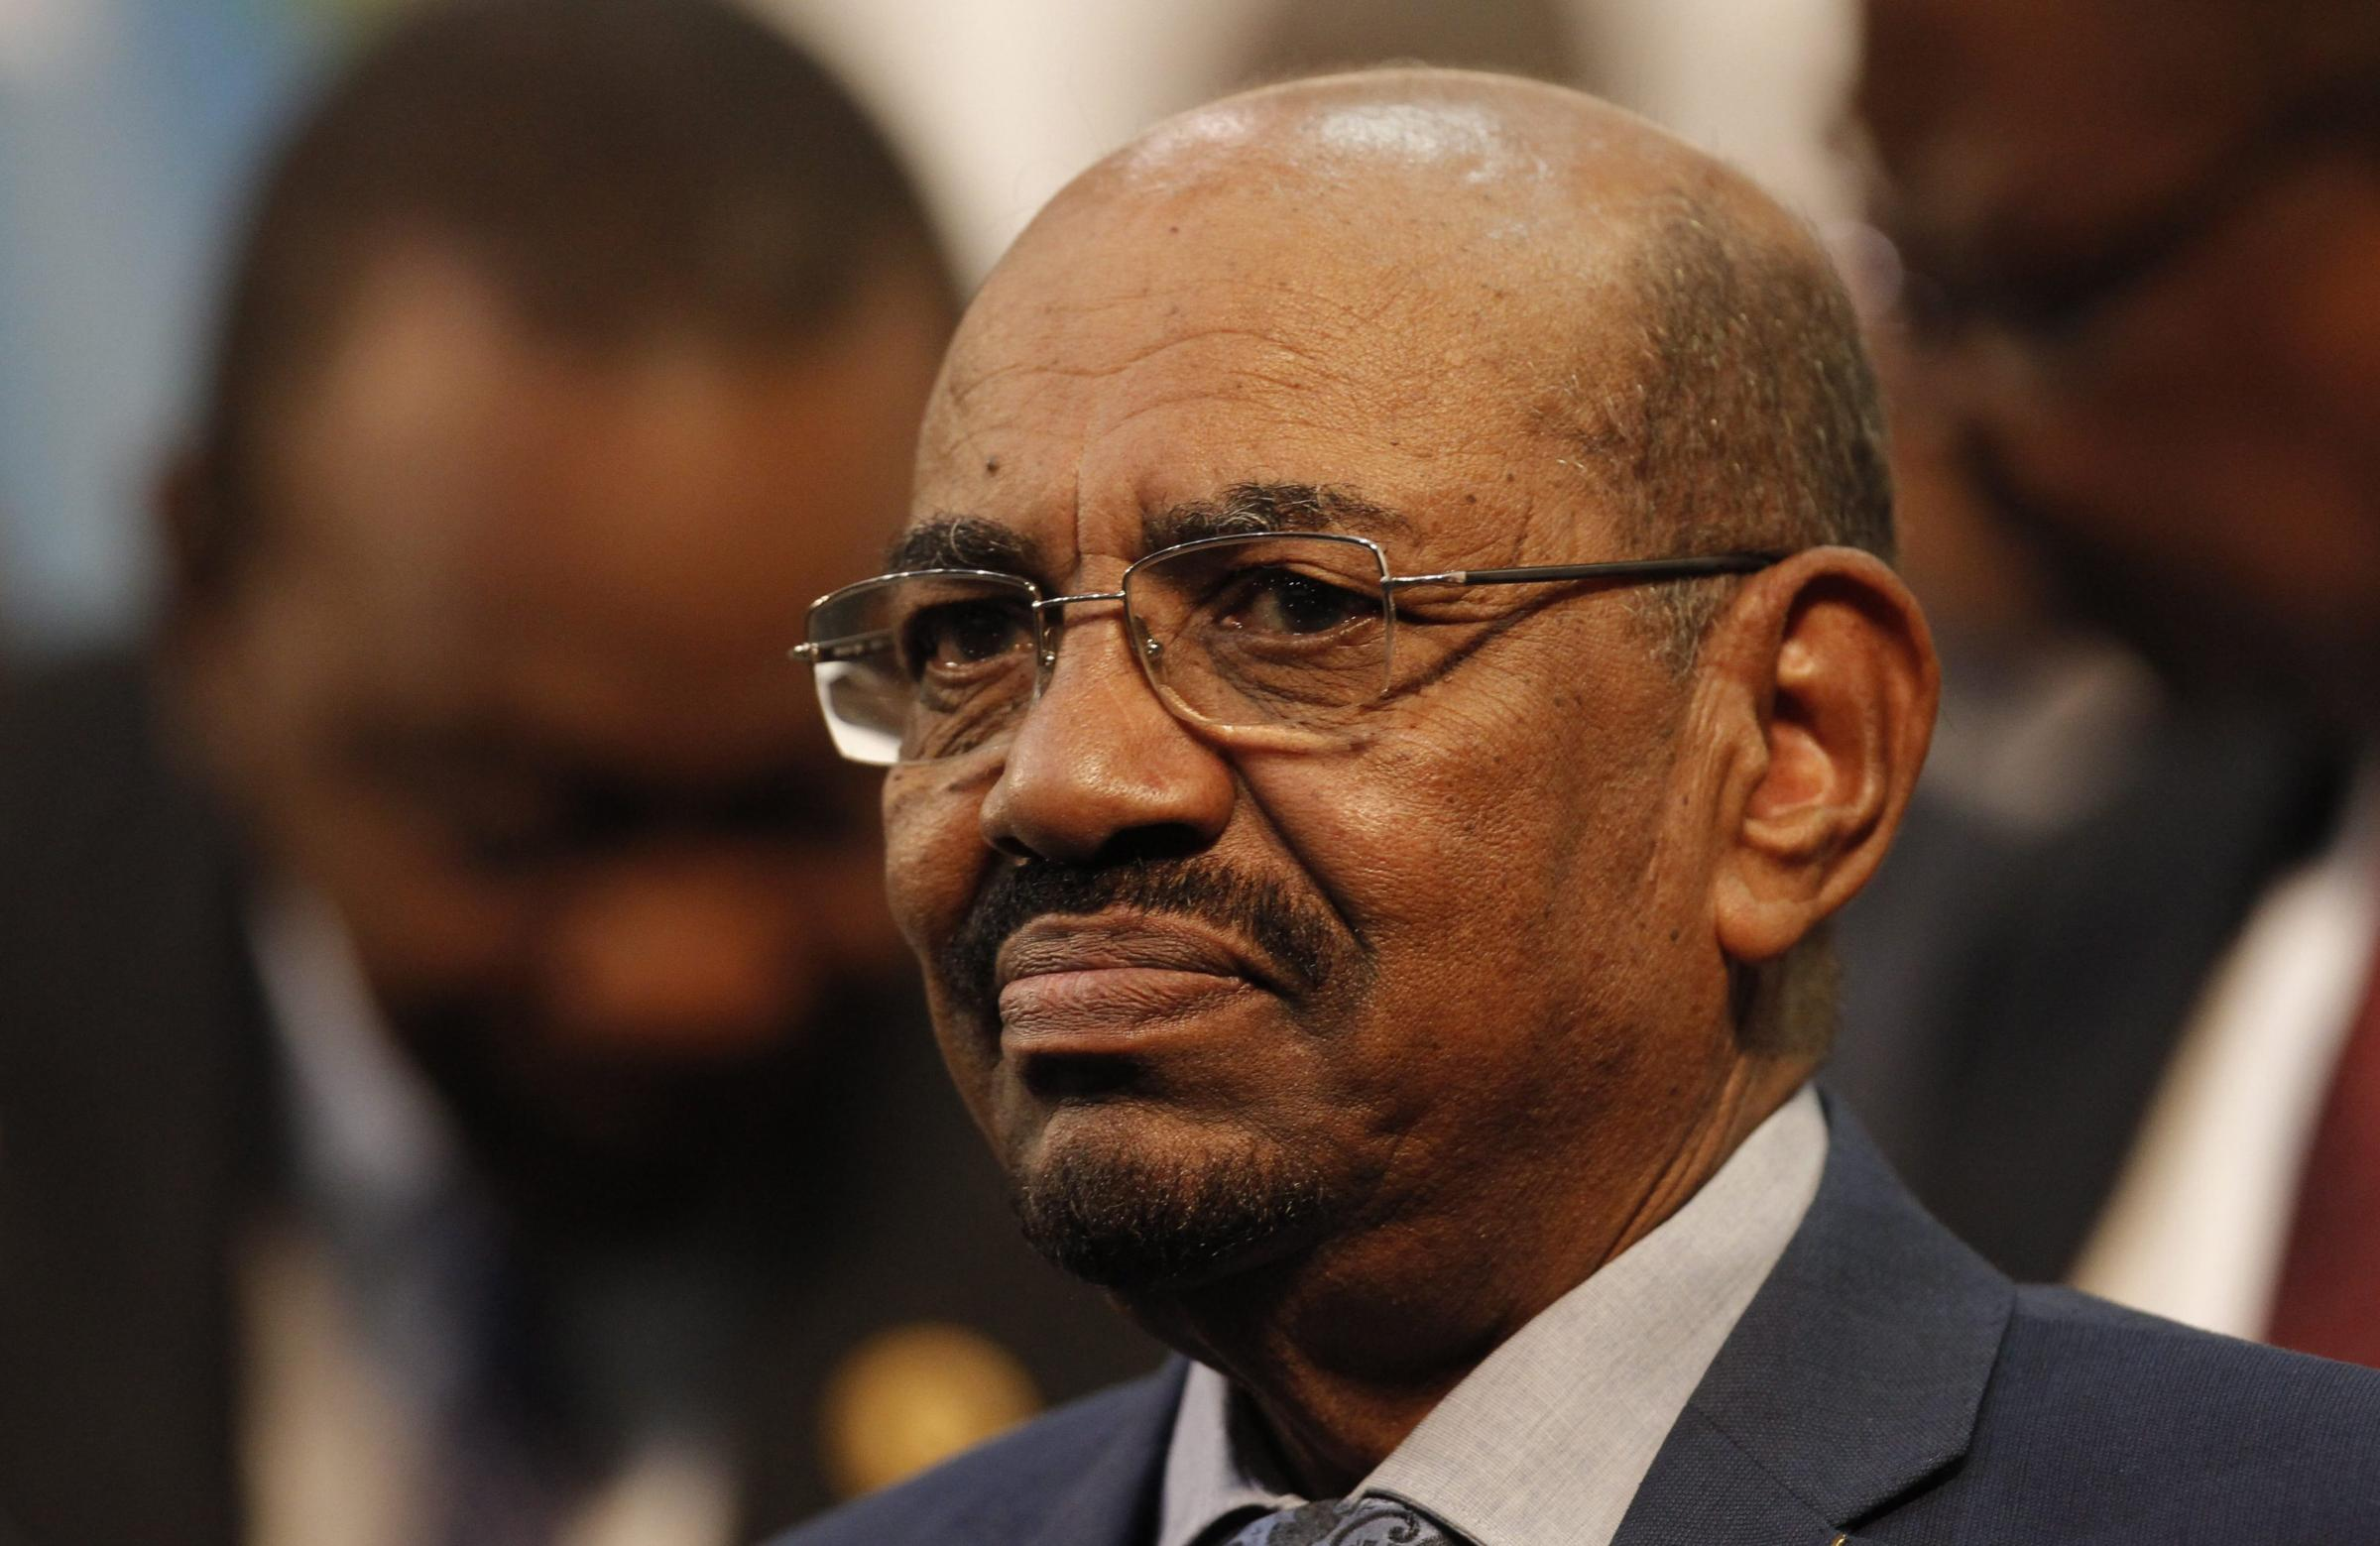 Omar al-Bashir will be put on trial at home